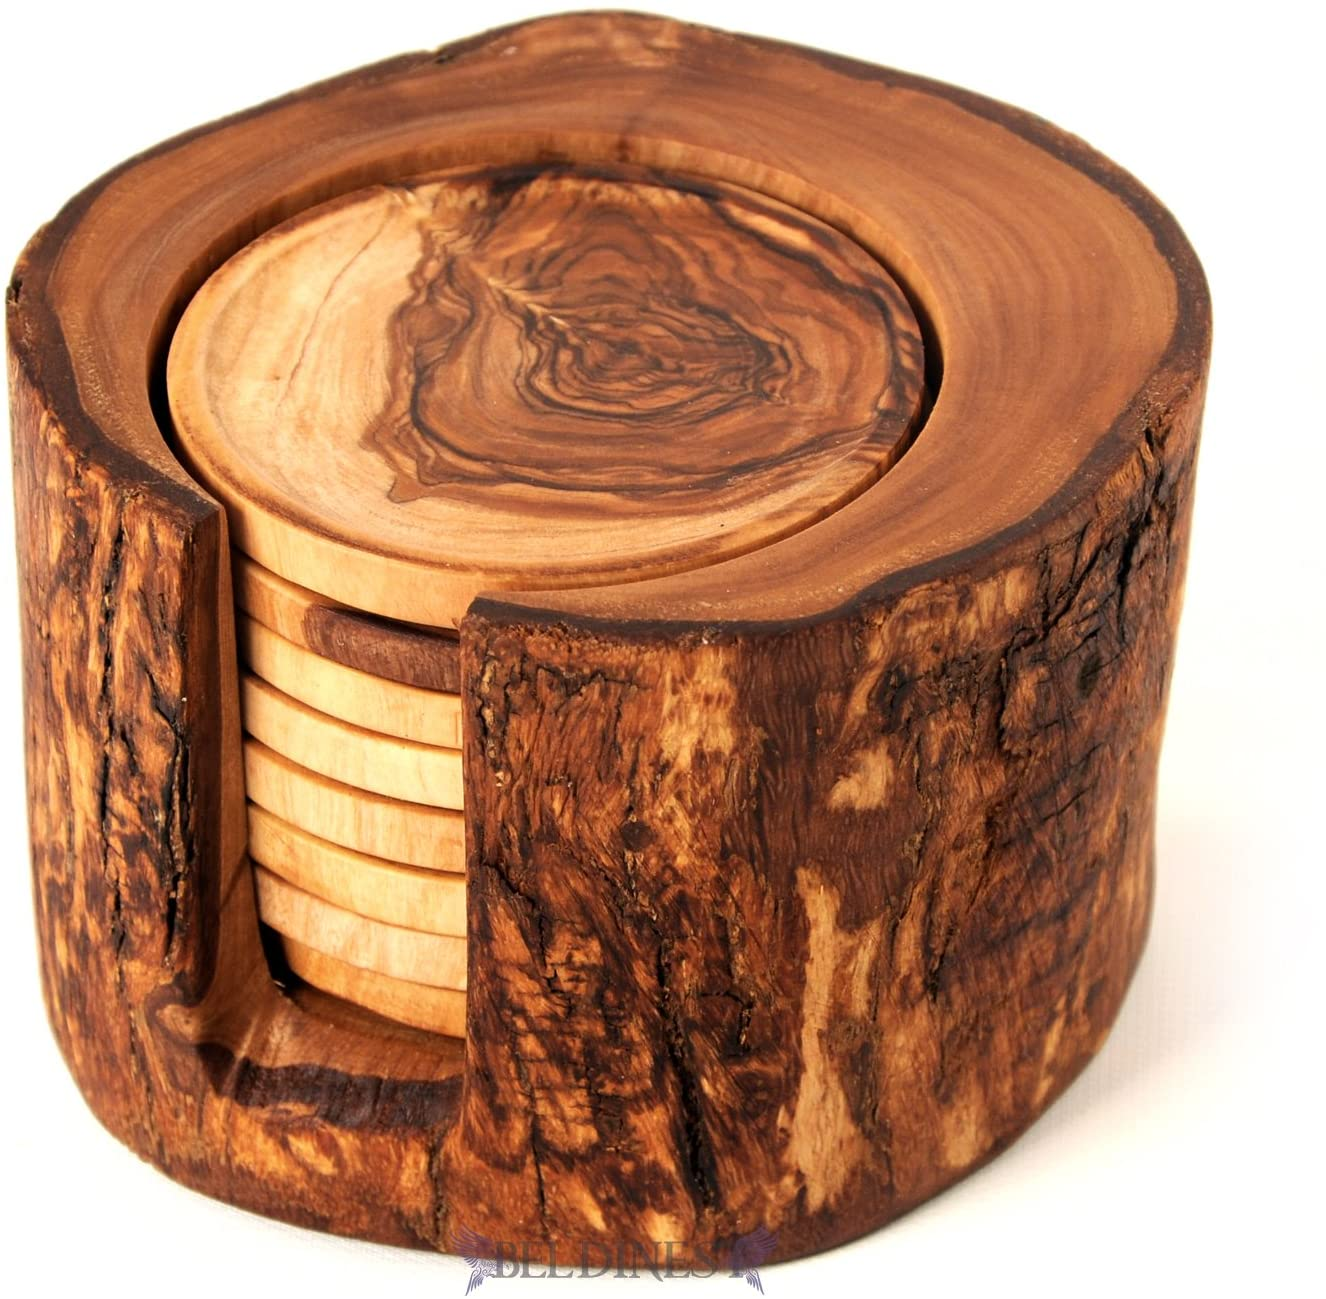 BeldiNest Sale! Olive Wood Rustic Coaster Set of 8 and Holder, Wooden Handmade Coasters